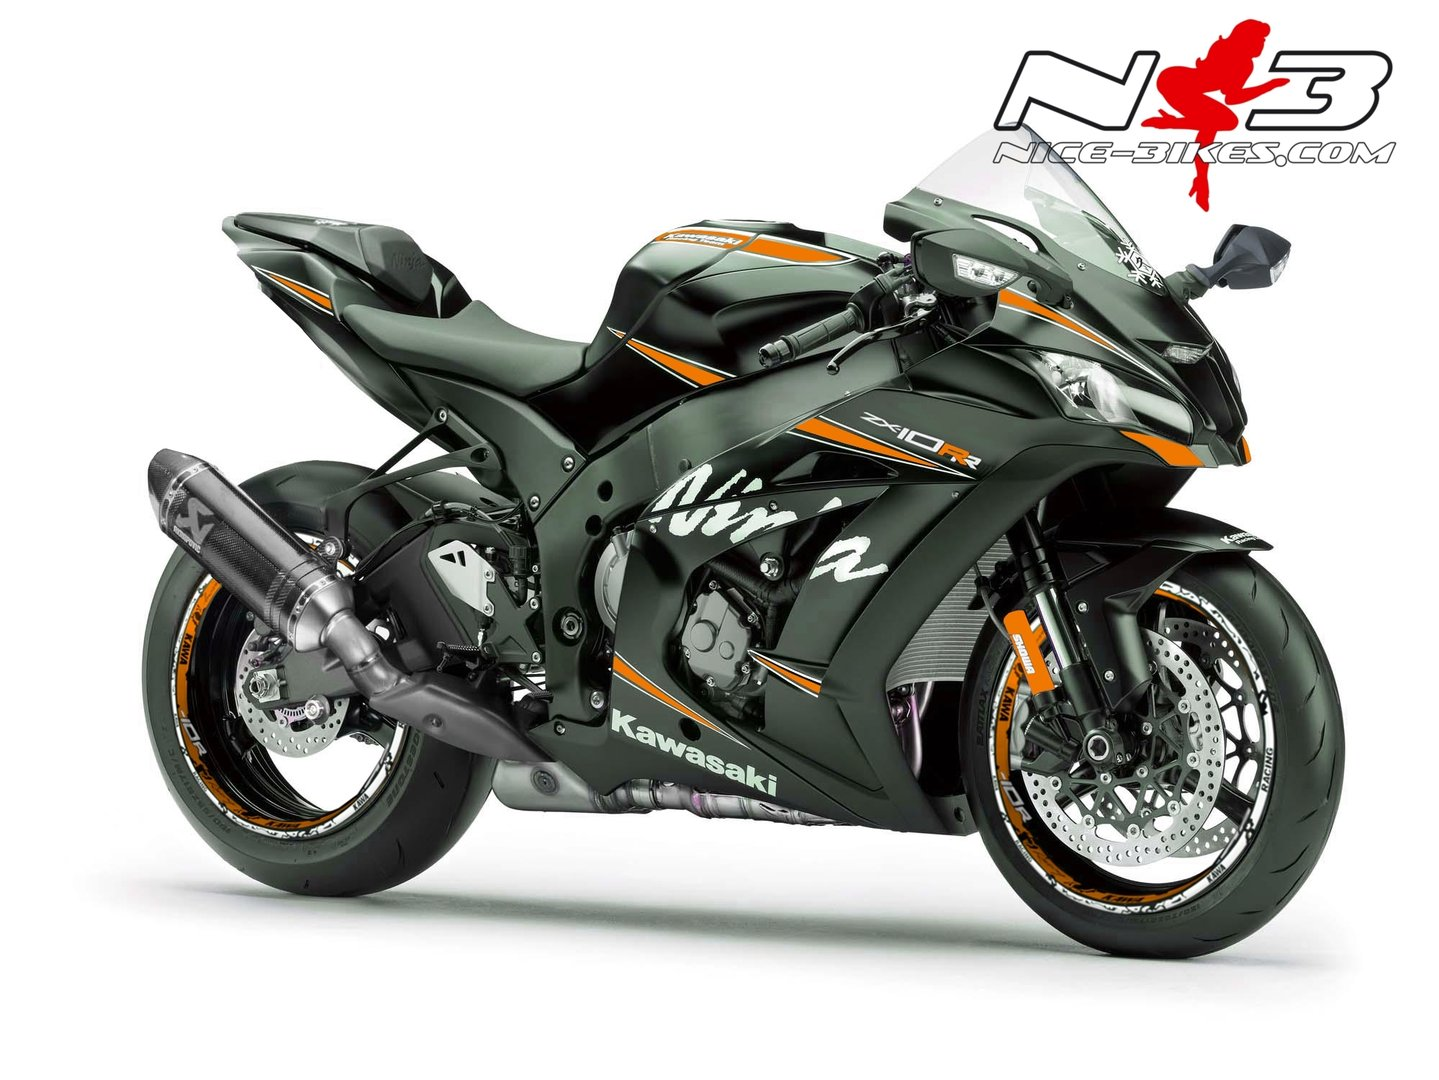 ___ ZX-10RR Ninja ___ GET-CLOSER Orange auf schwarzer Maschine 2017